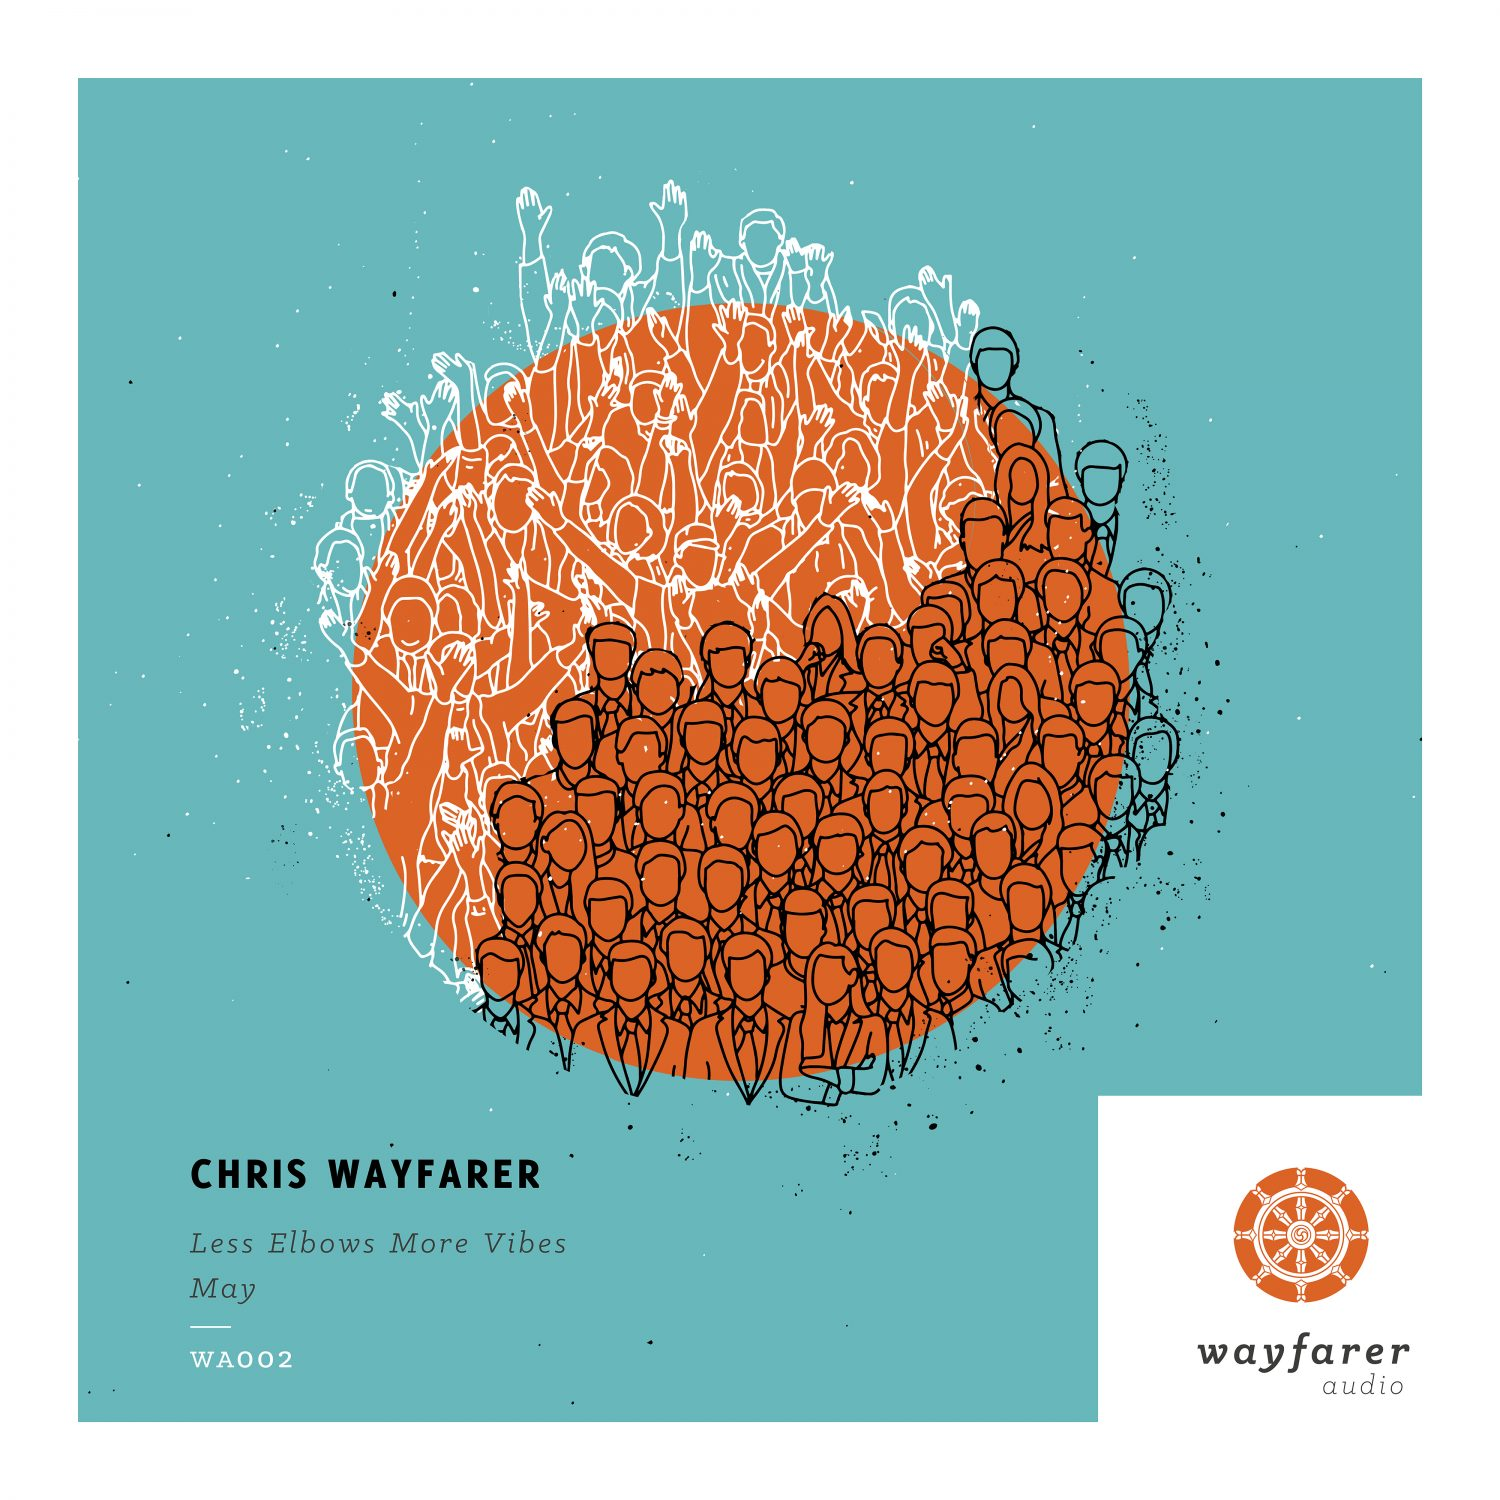 Chris Wayfarer - Less Elbows More Vibes